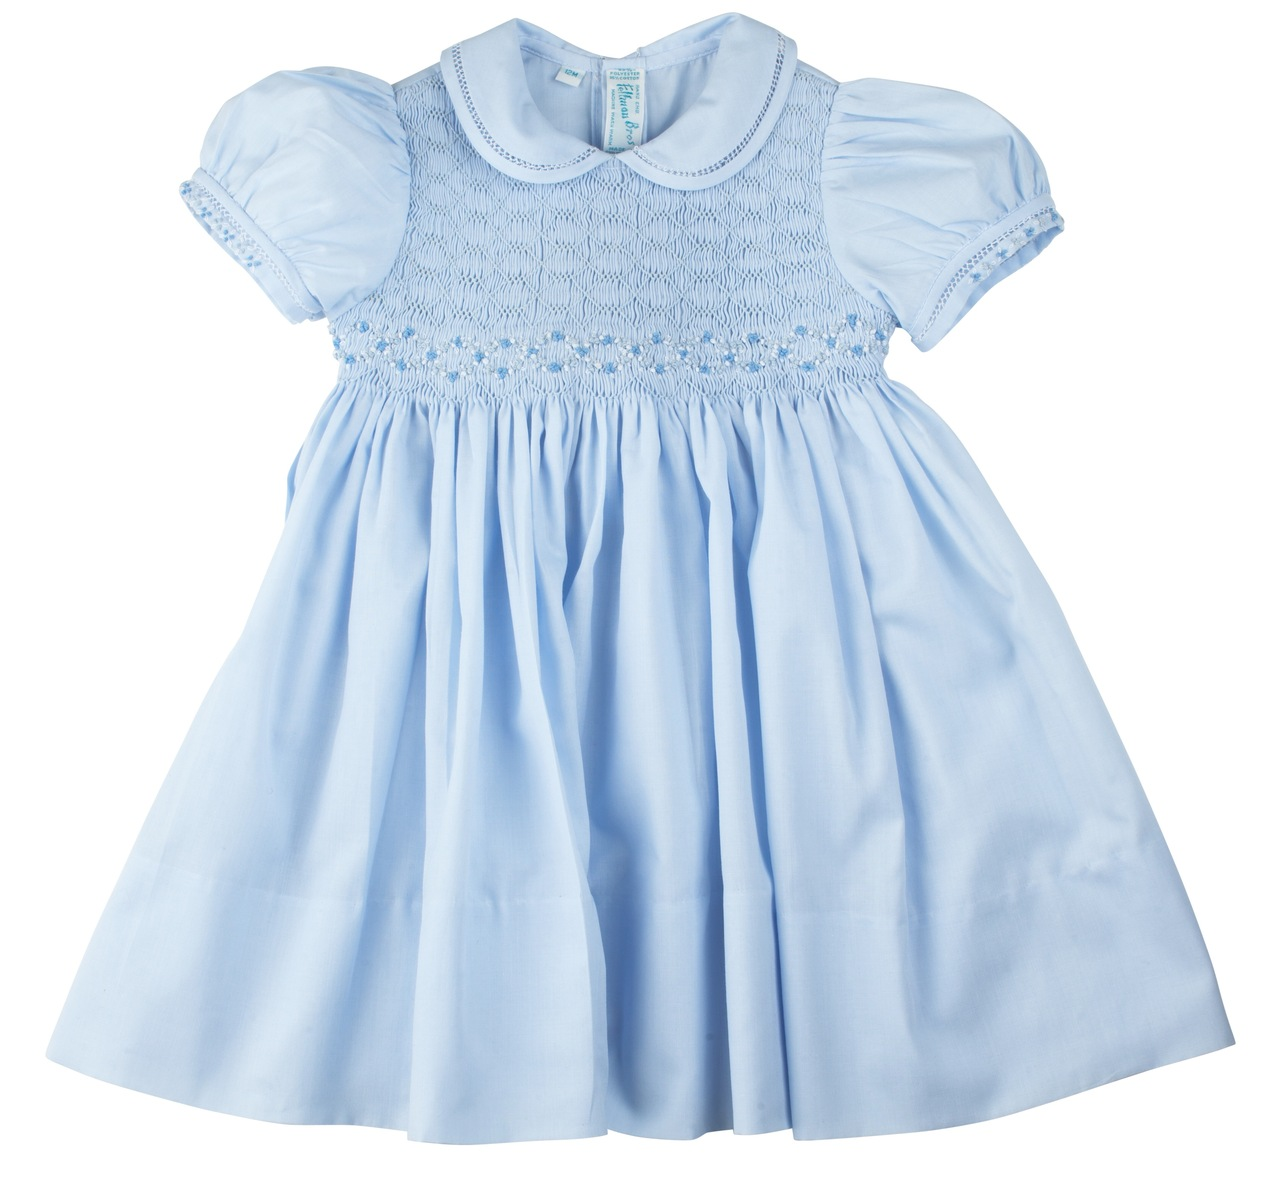 bce9fc9bb23f2 Collared Smocked Dress